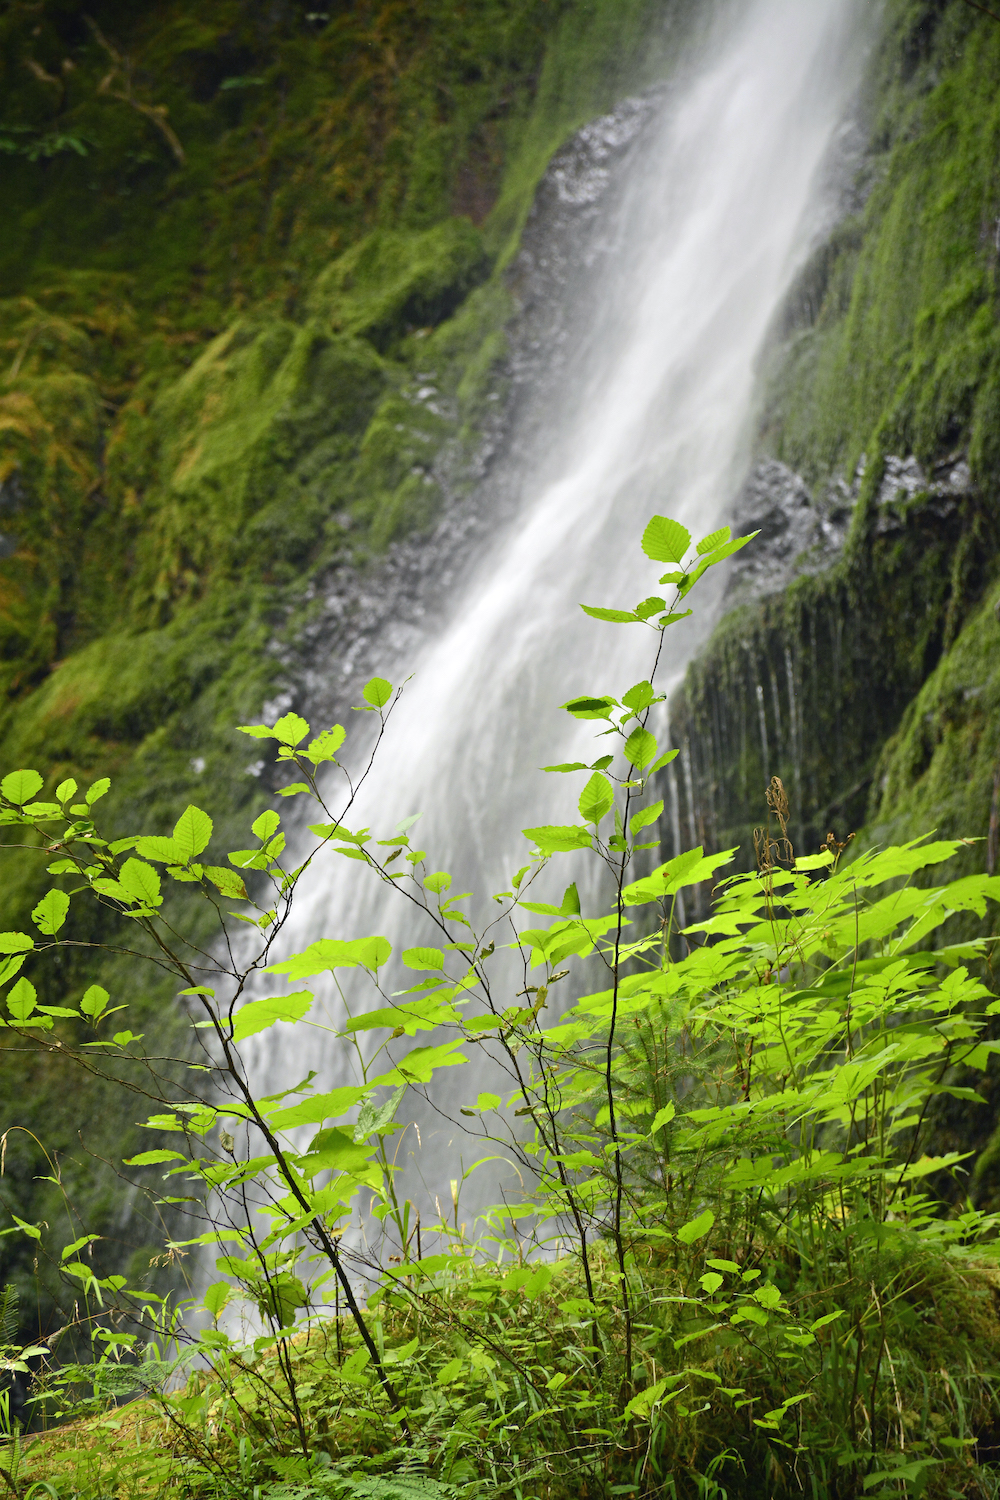 A waterfall with green shrubs in the foreground.